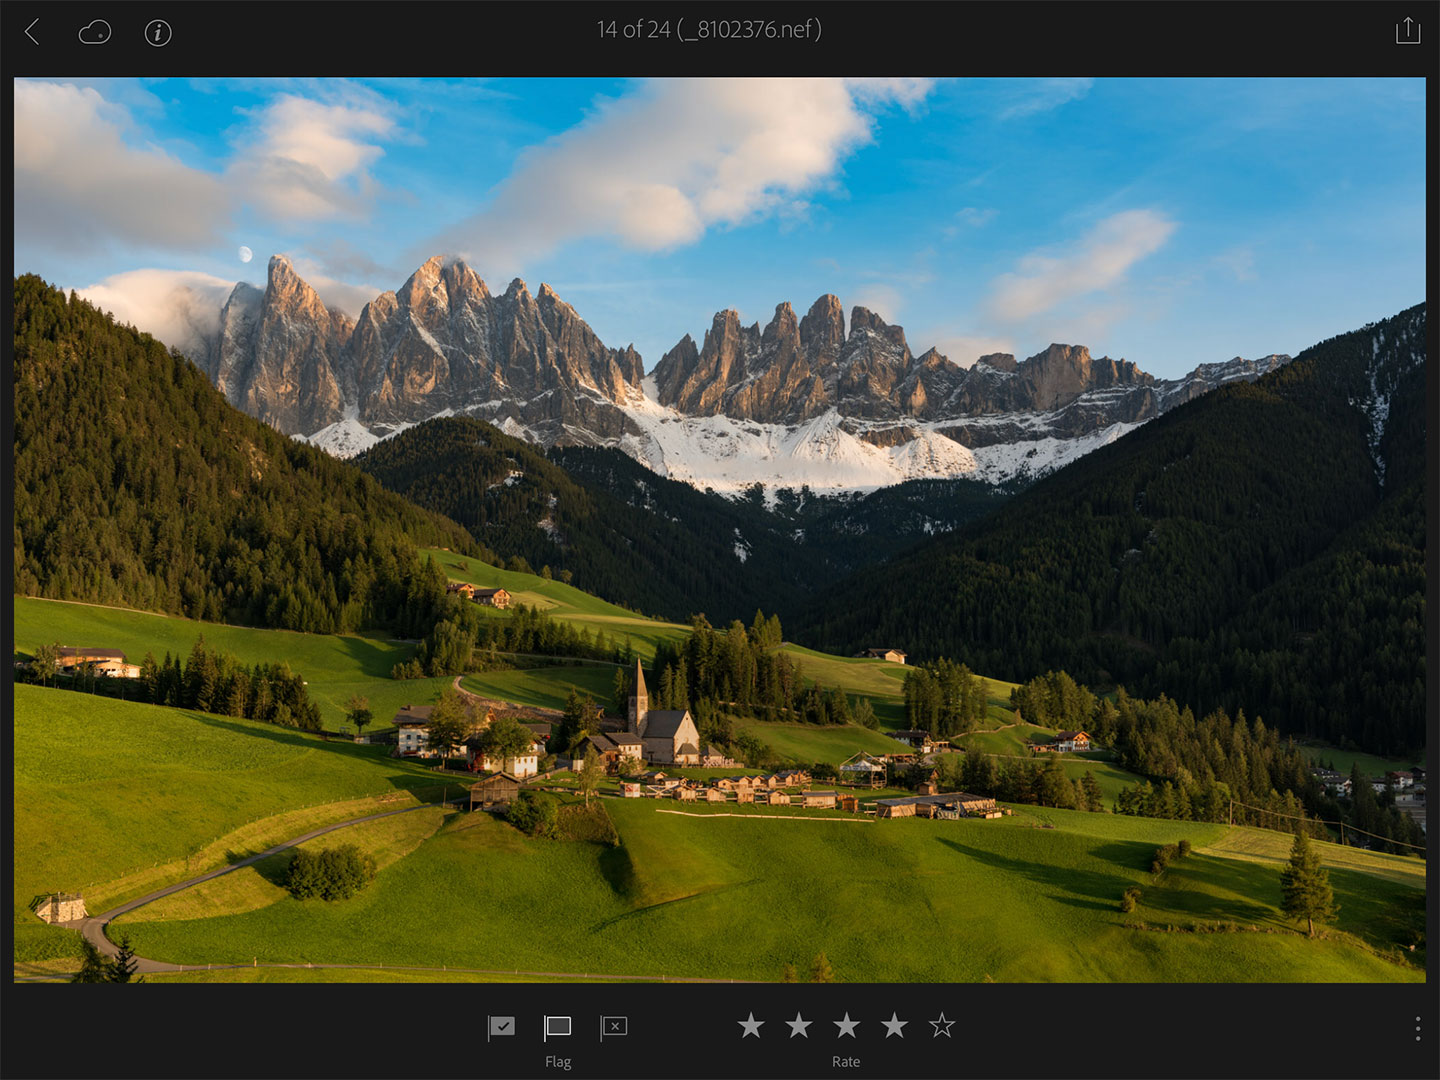 Lightroom-Mobile-Favorites-Flagging-Starring-Italy-Dolomites